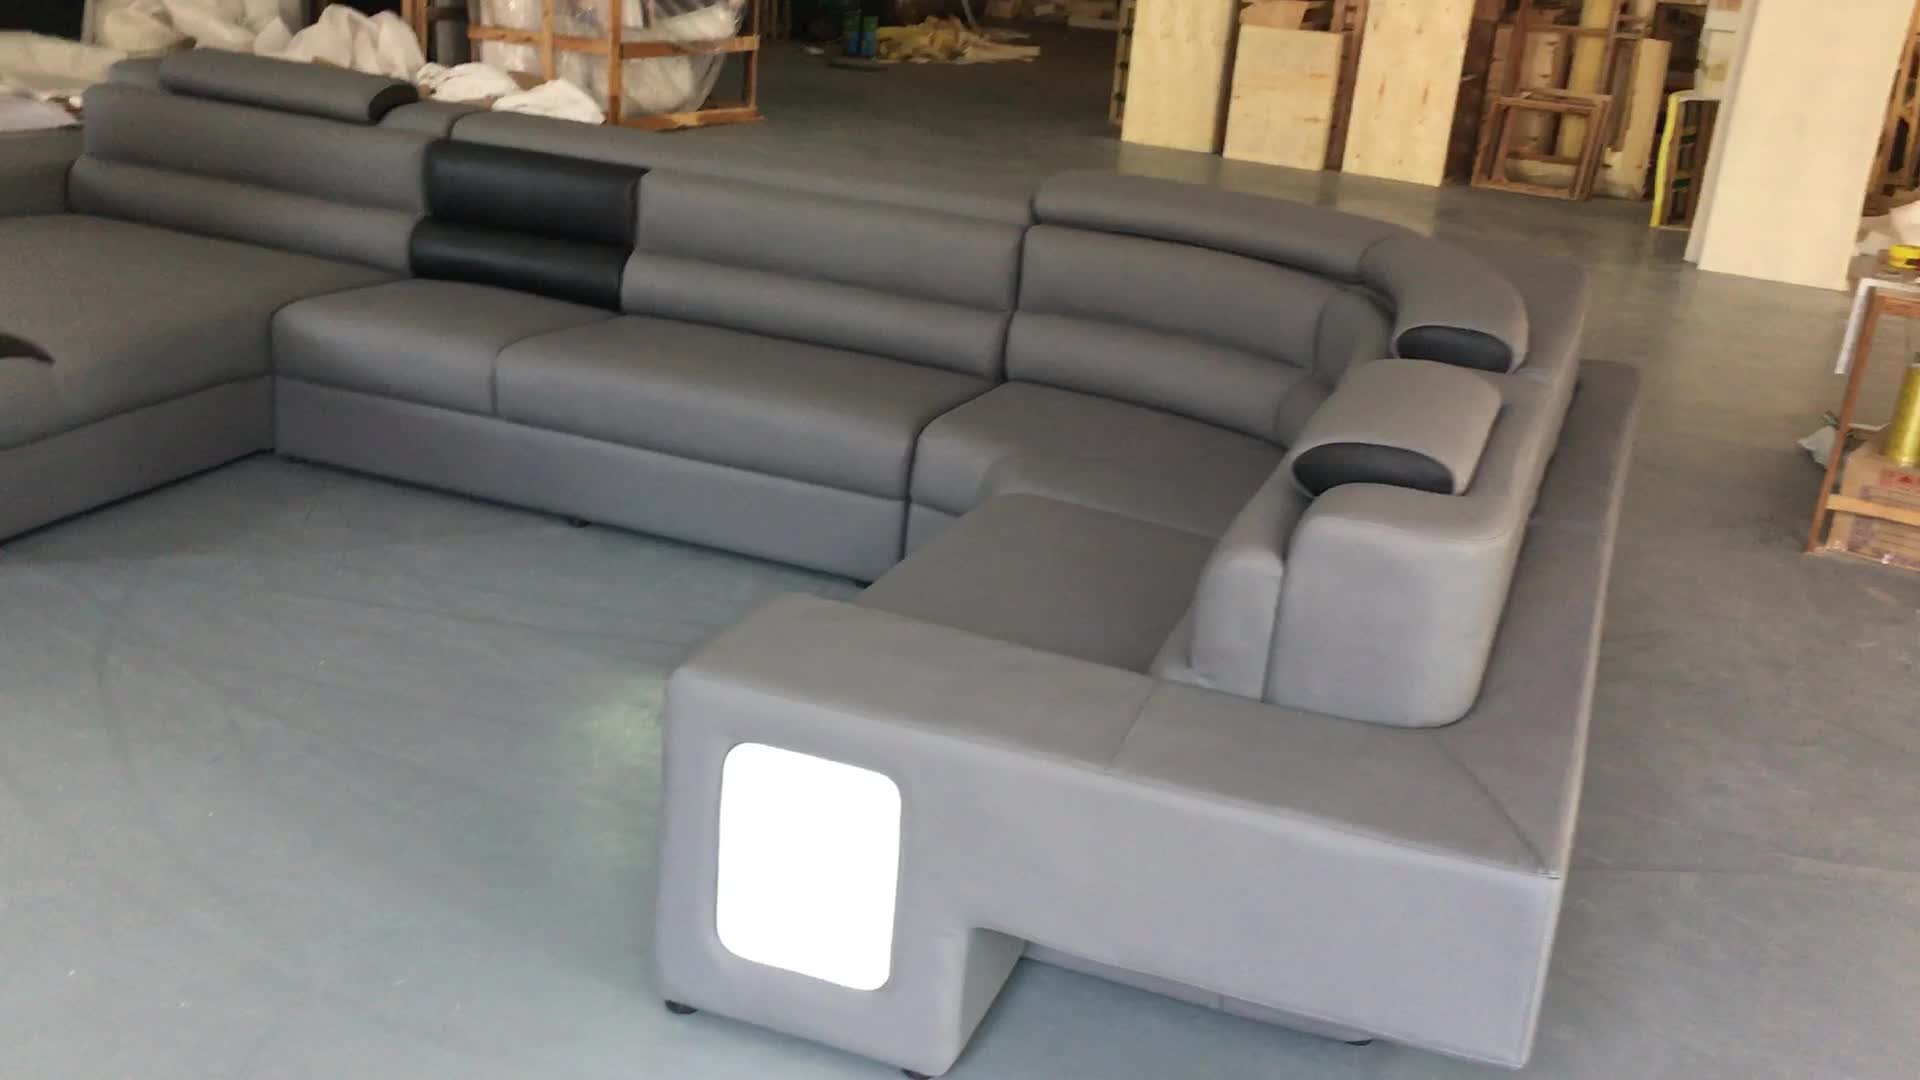 Made In Italy Leather Luxury Contemporary Furniture Set: Luxury Modern Furniture Sectional Sofa Italian Leather